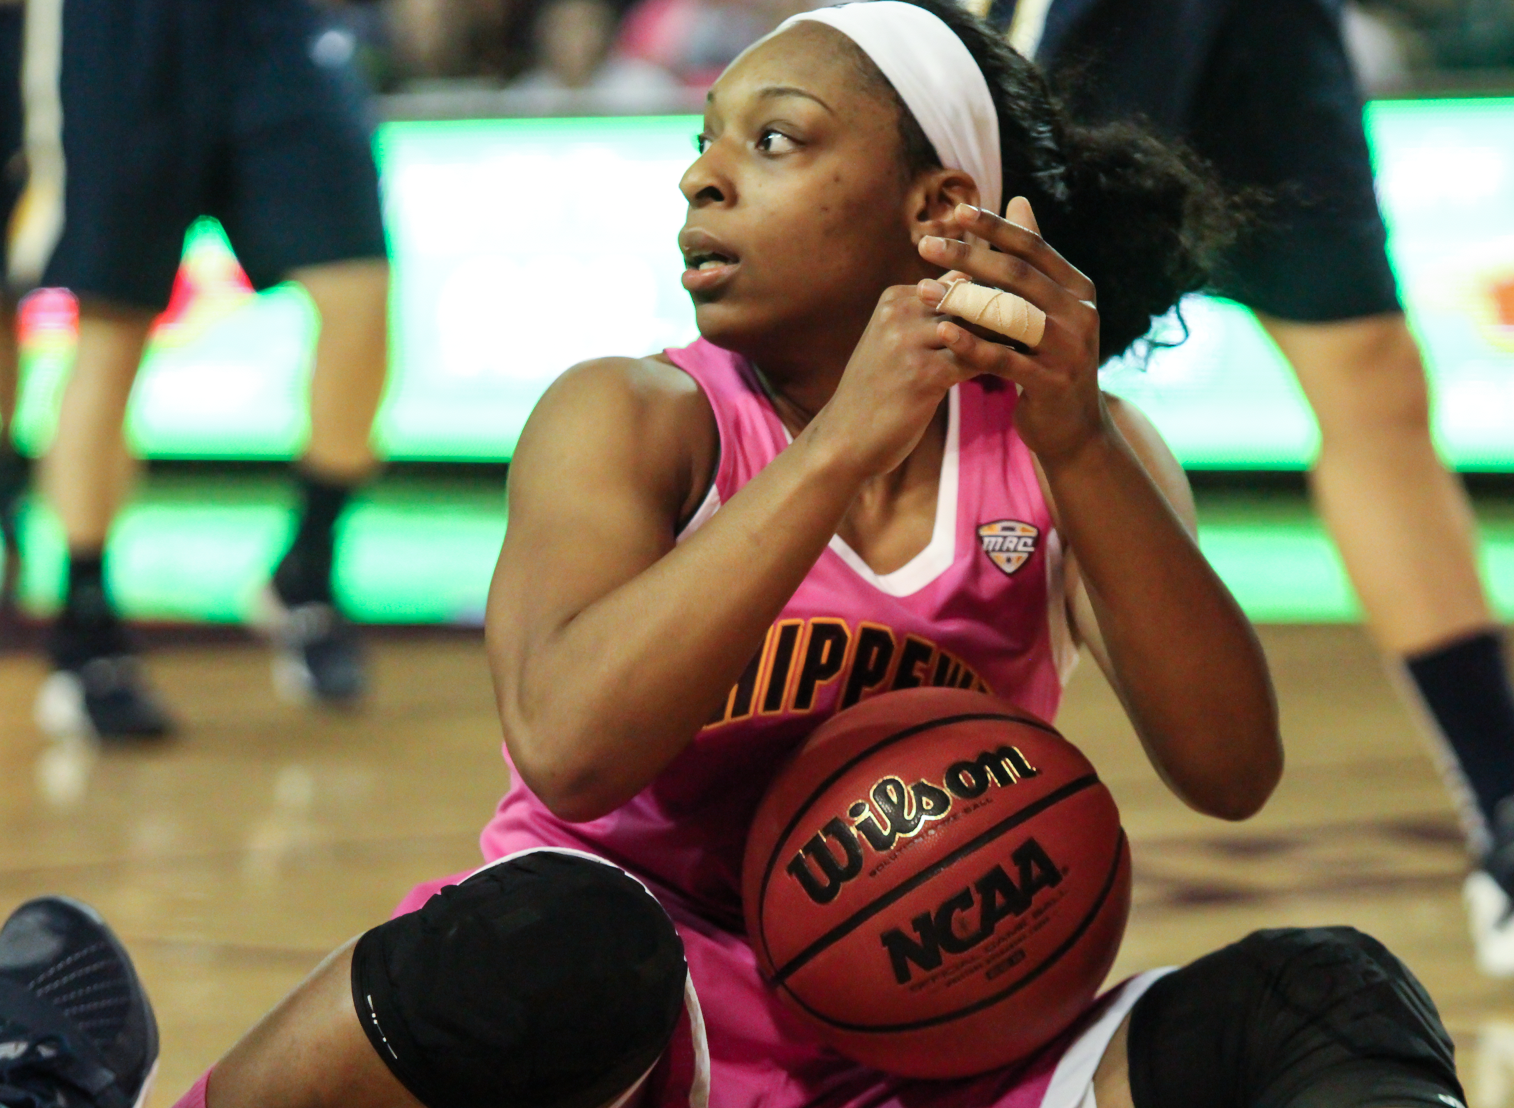 Guard Da'Jourie Turner (1) calls a timeout after stealing the ball in the fourth quarter against Toledo at McGurick Arena on Saturday, Feb. 20.